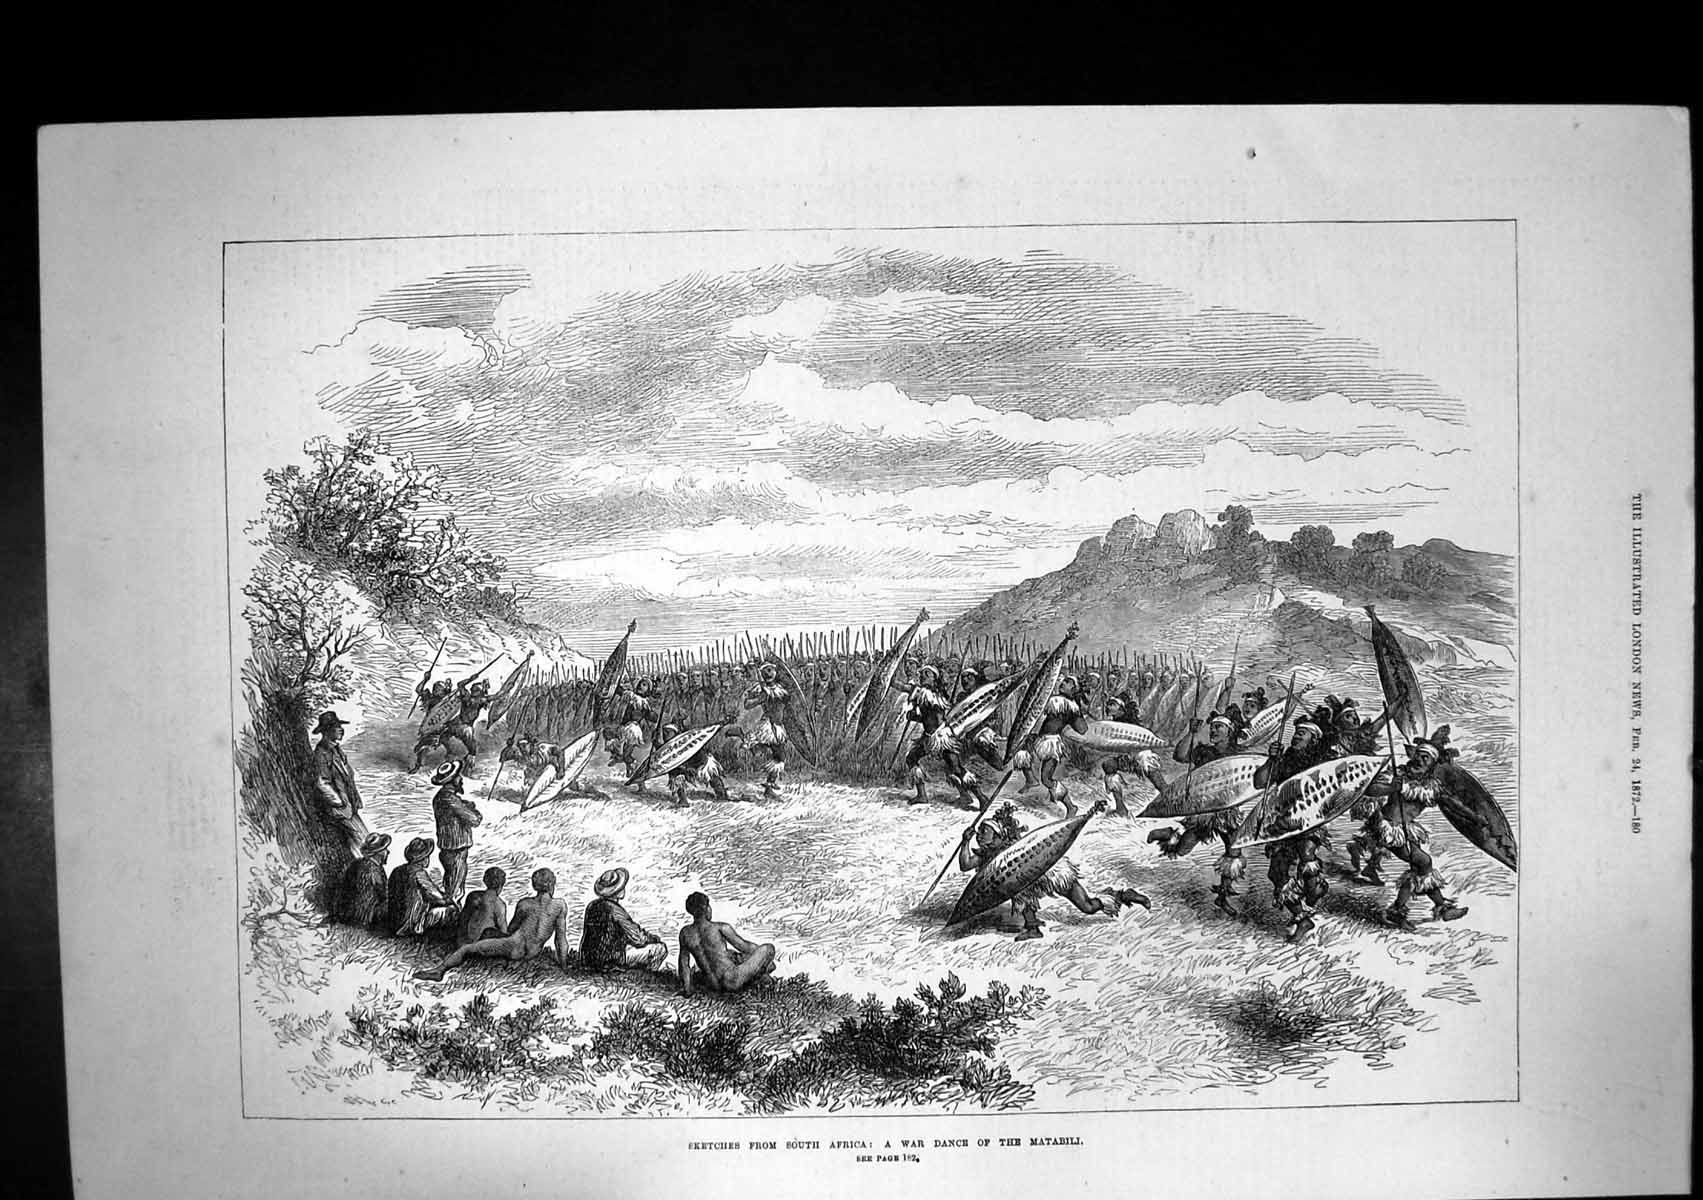 [Print War Dance Matabili Tribe South Africa Spears 1872 273J683 Old Original]